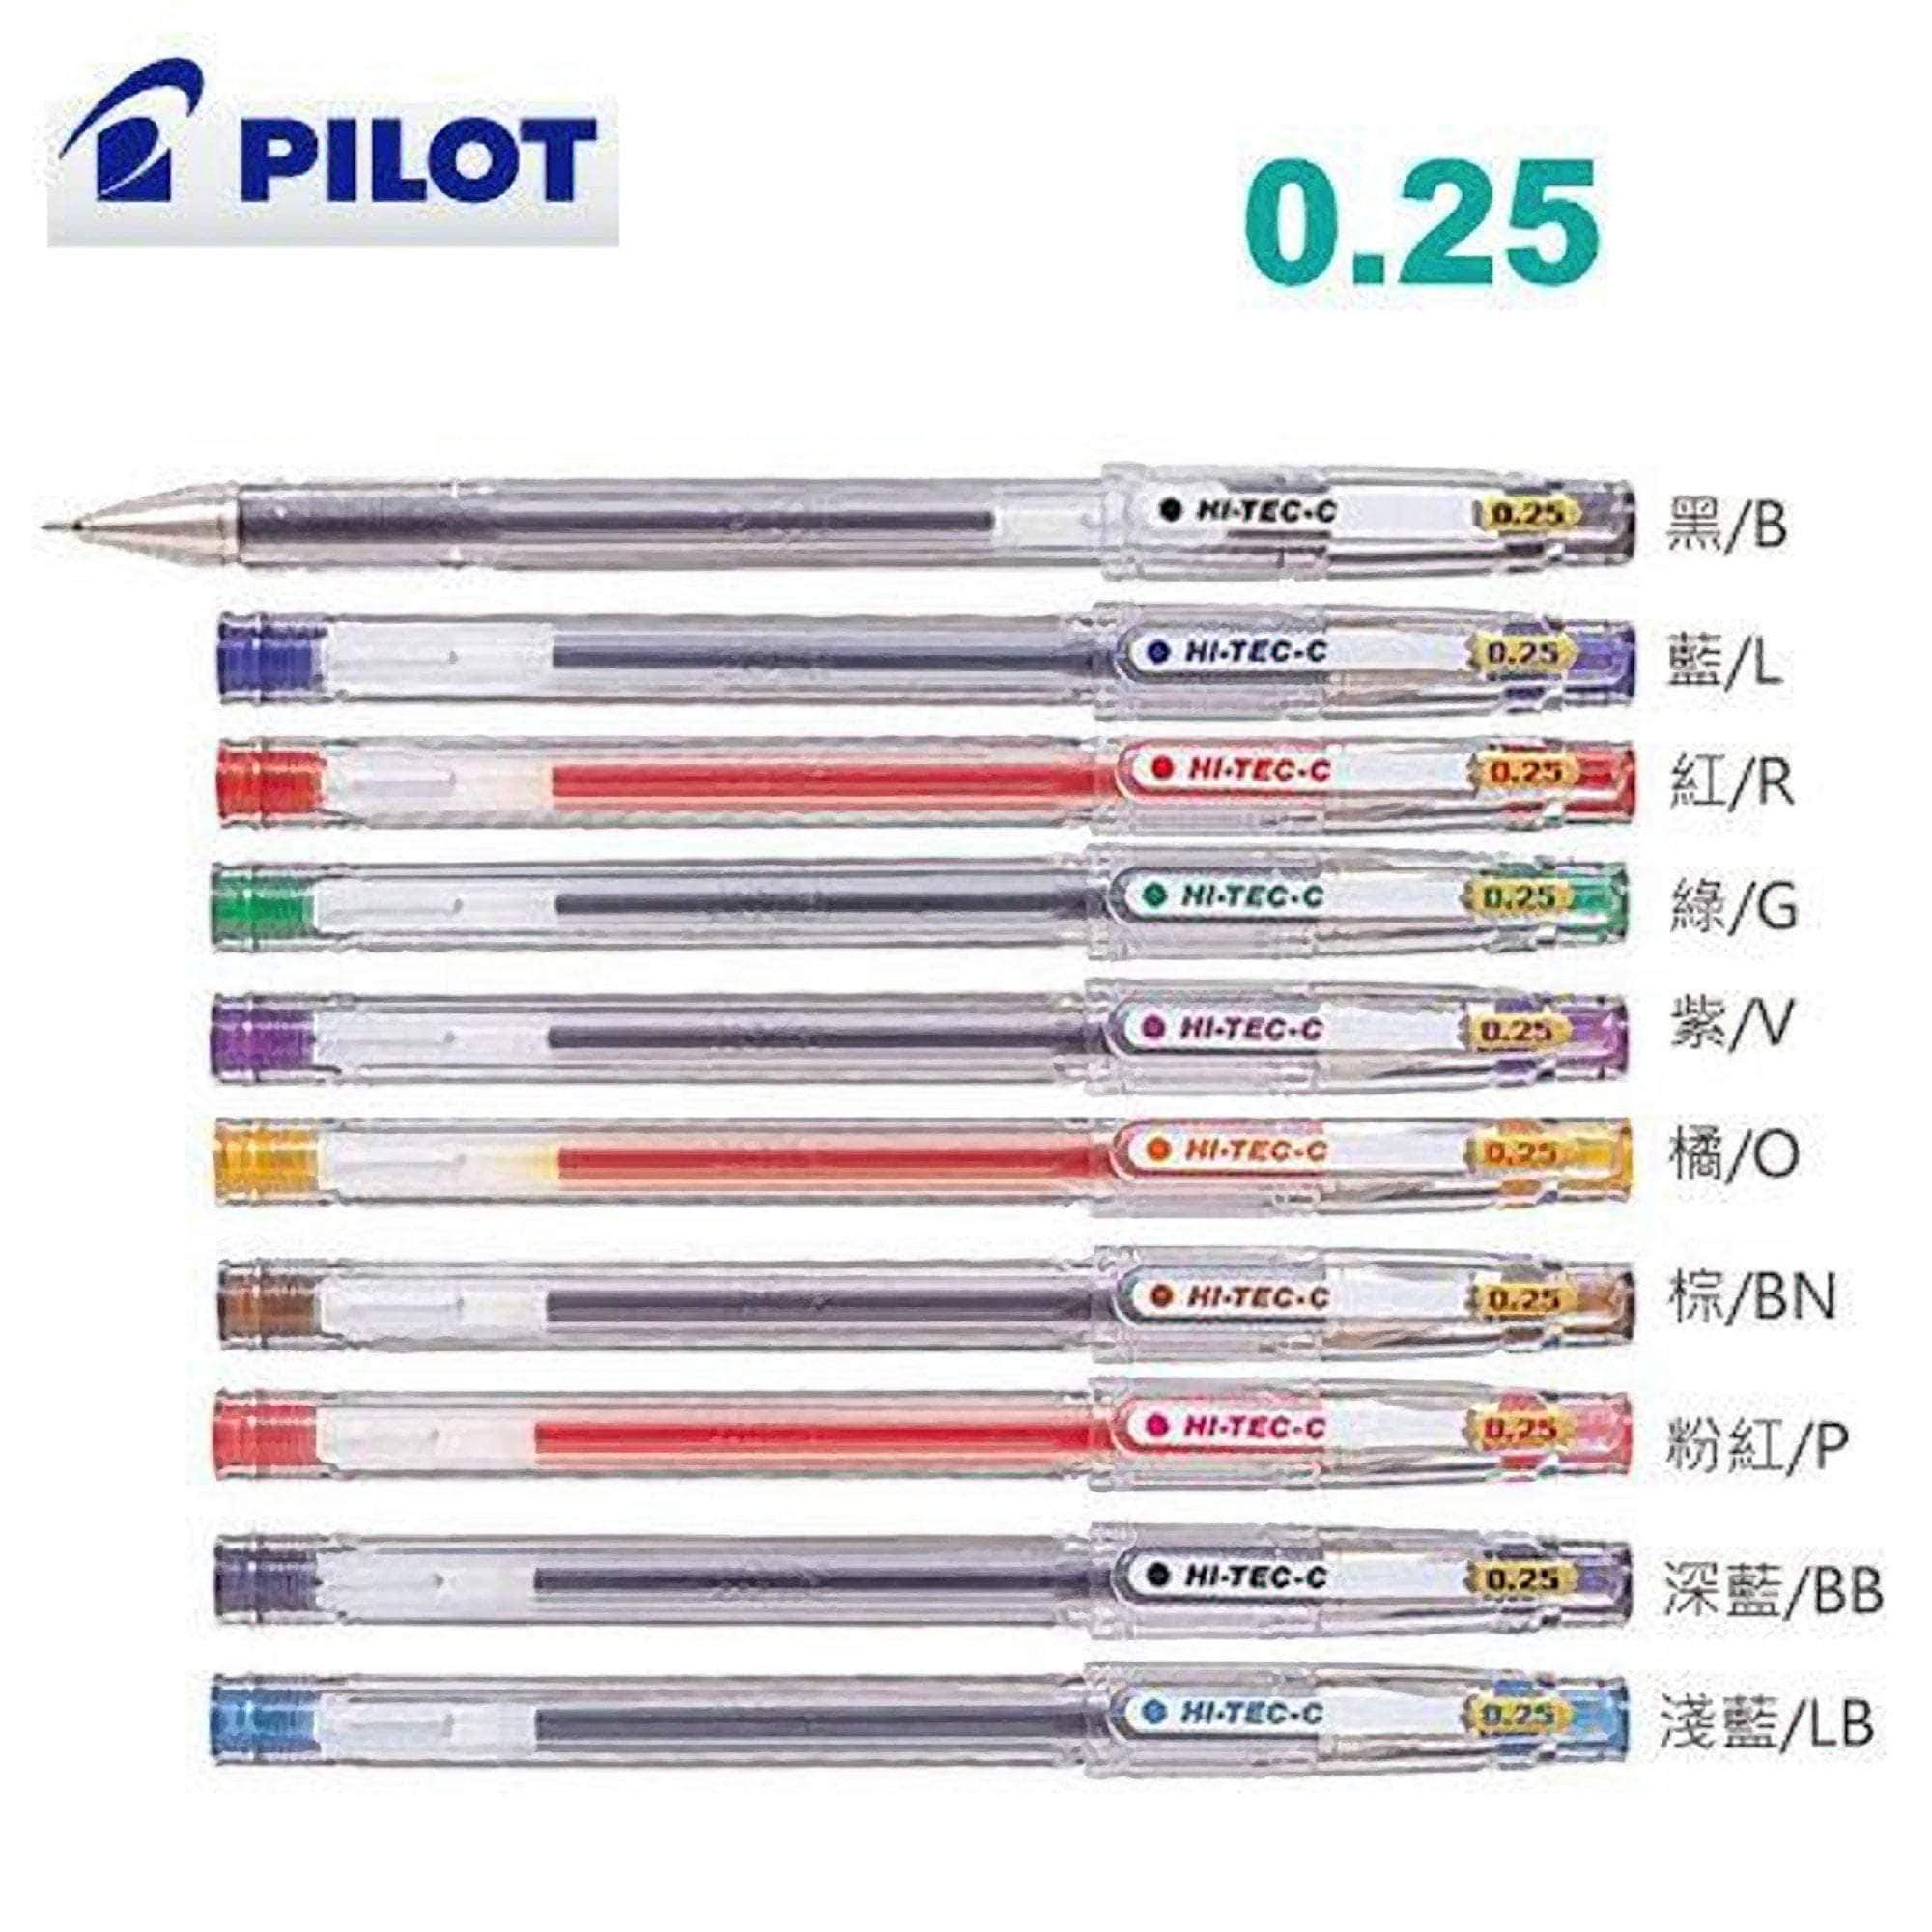 Pilot Hi-Tec-C Gel Pen Ultra Fine Point BLUE BLACK | 0.25 mm - The Stationery Life!